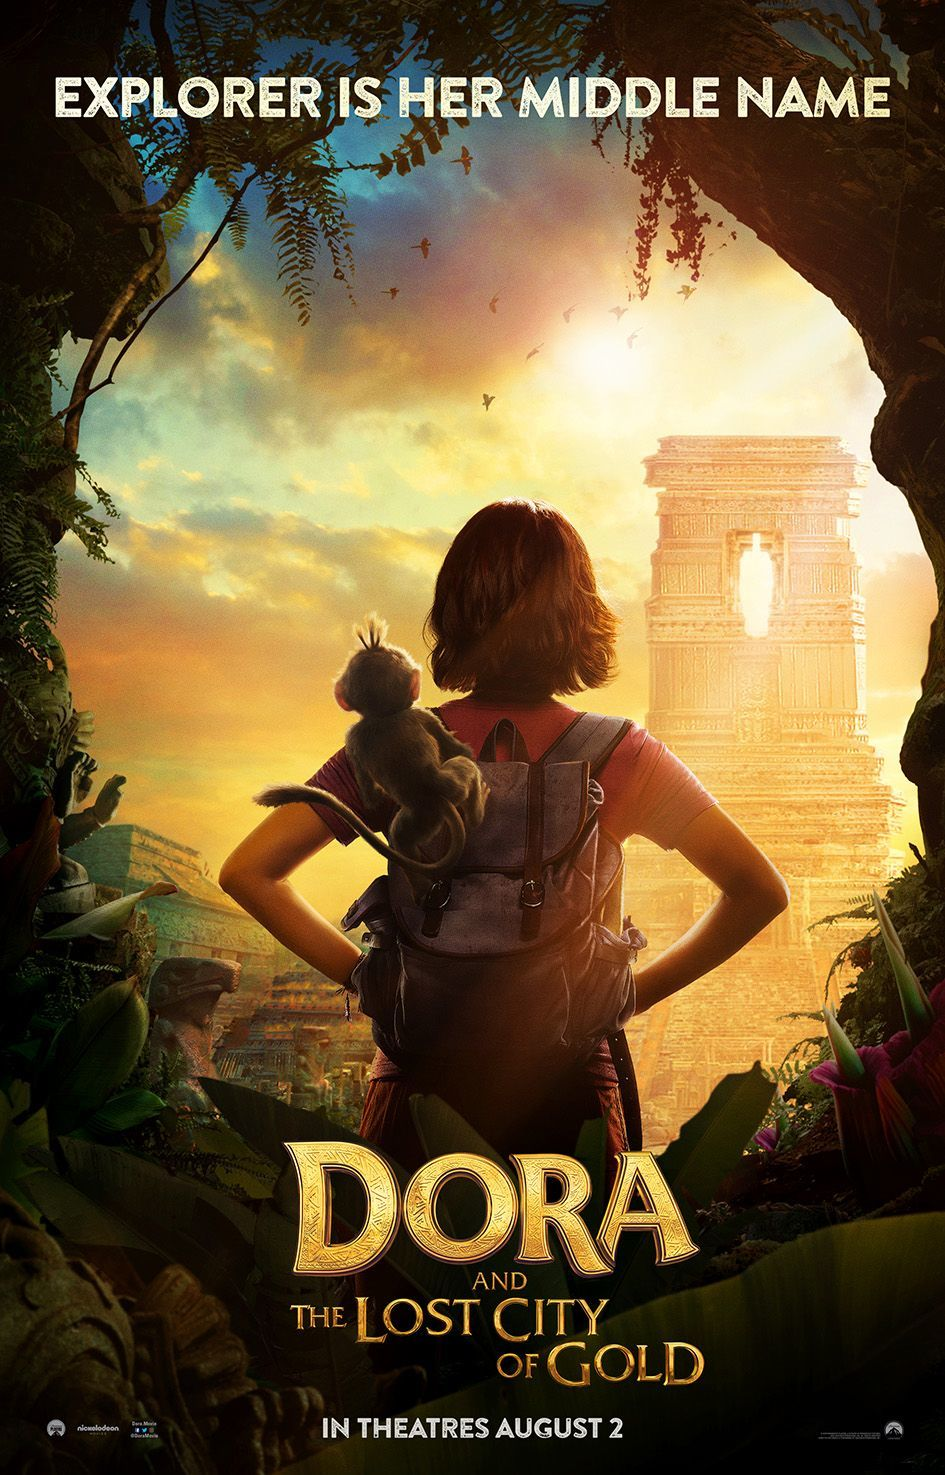 Dora-and-The-Lost-City-Of-Gold-Poster-1